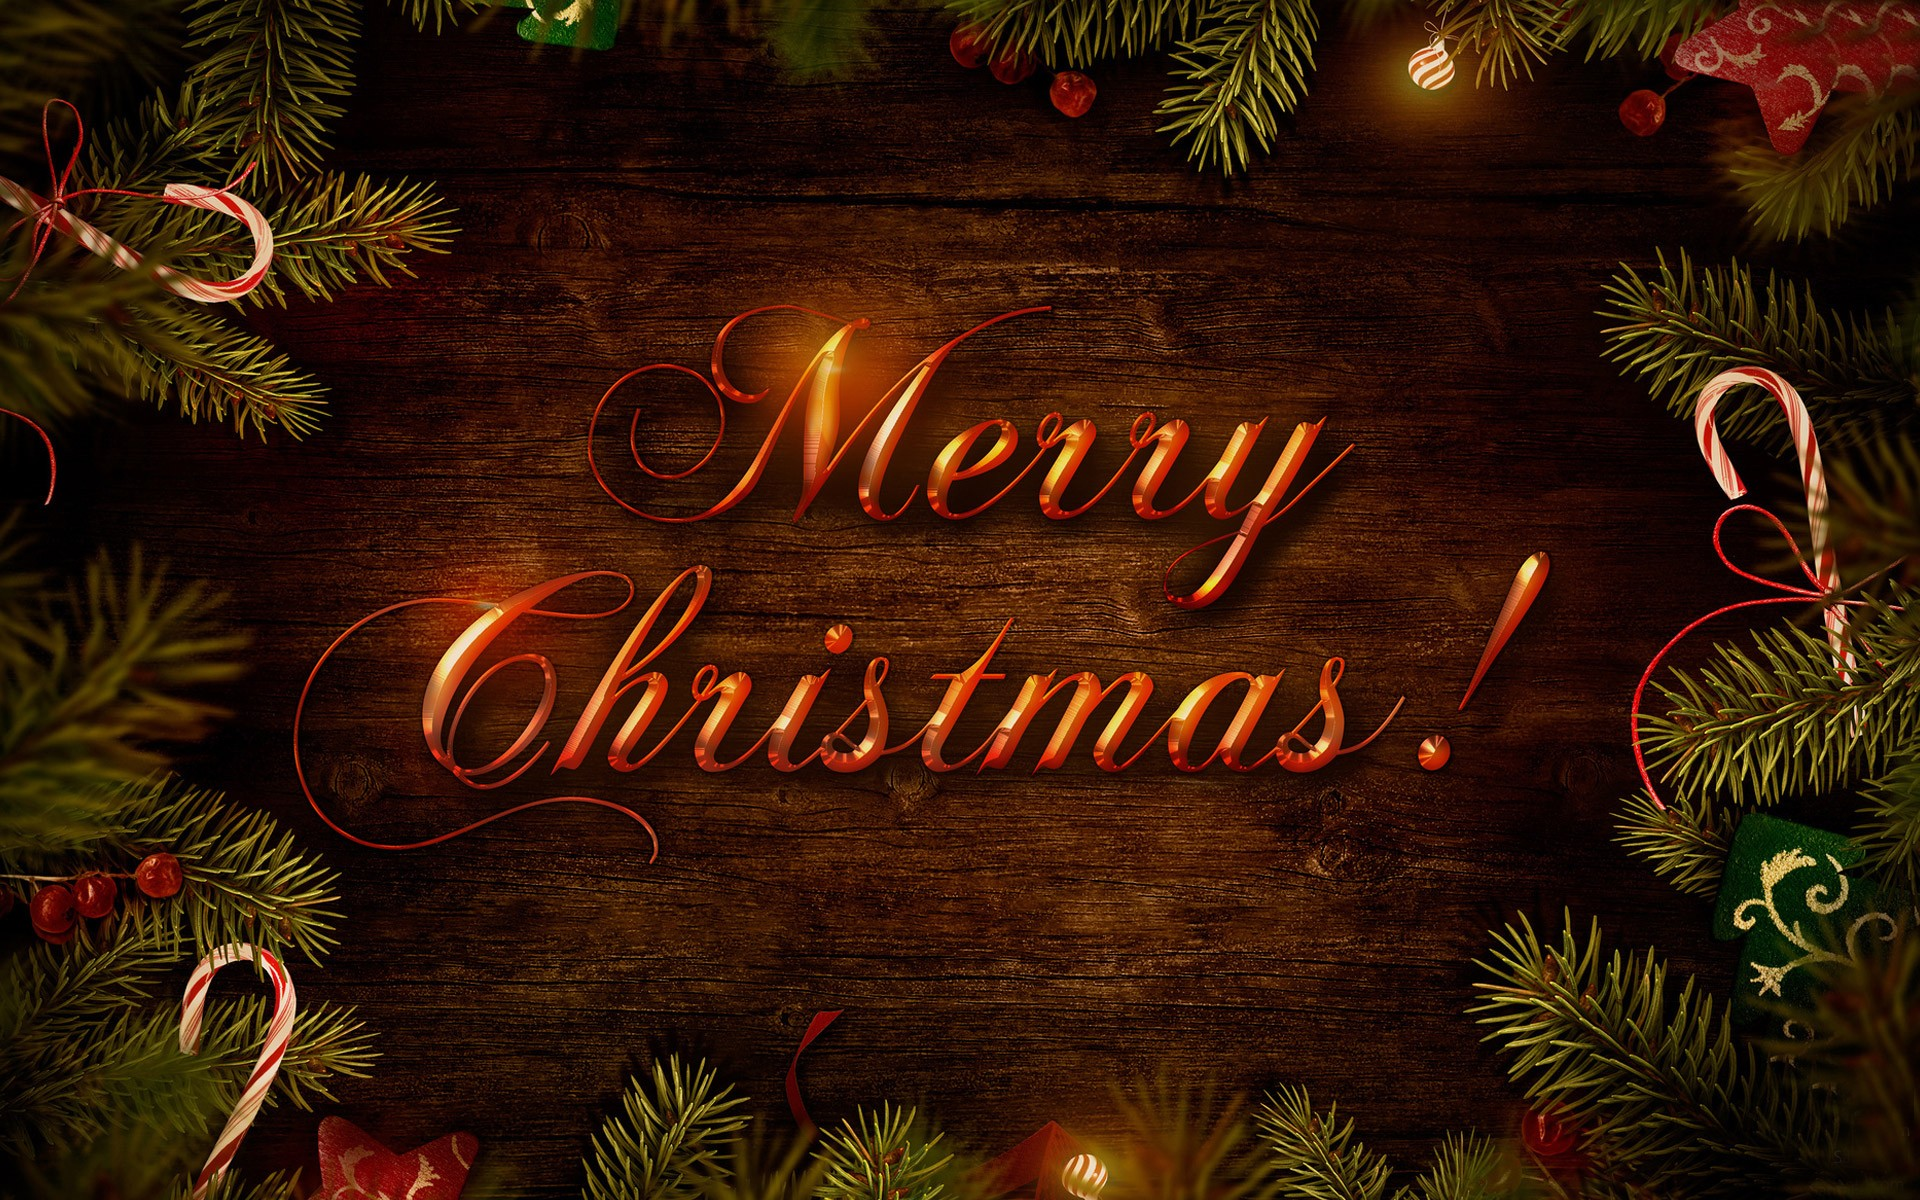 merry christmas hd image for mobile